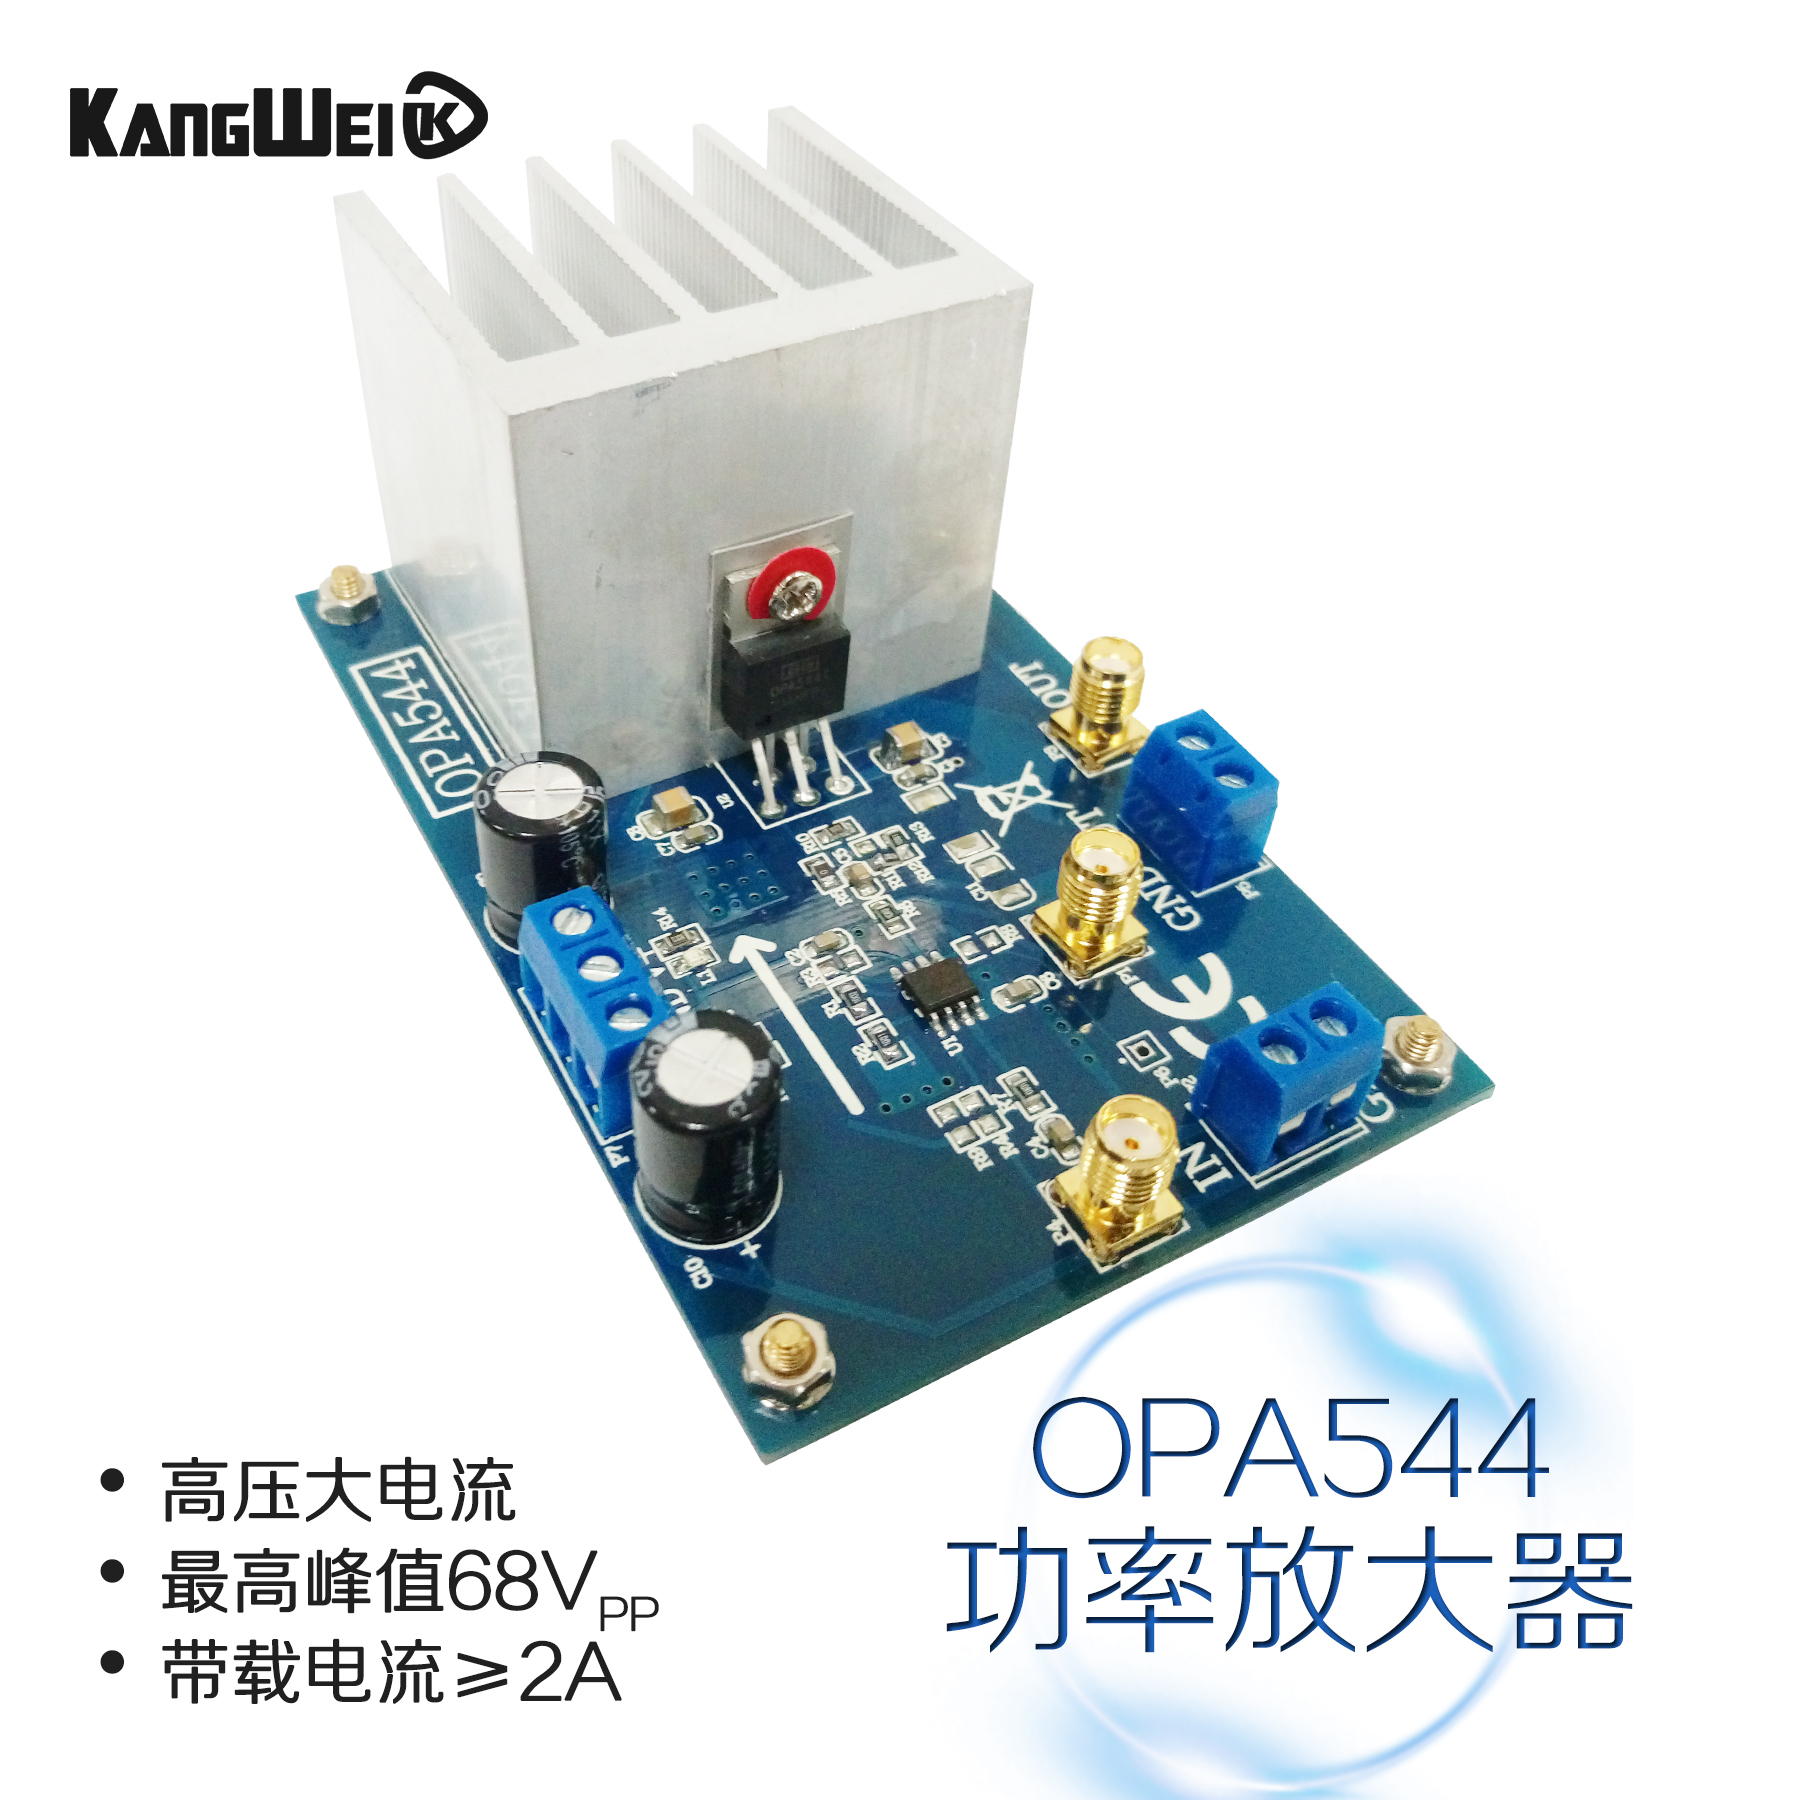 Power Amplifier High Voltage and High Current OPA544 Module 68V Peak 2A Current Carrying Motor Drive power amplifier high voltage and high current opa544 module 68v peak 2a current carrying motor drive